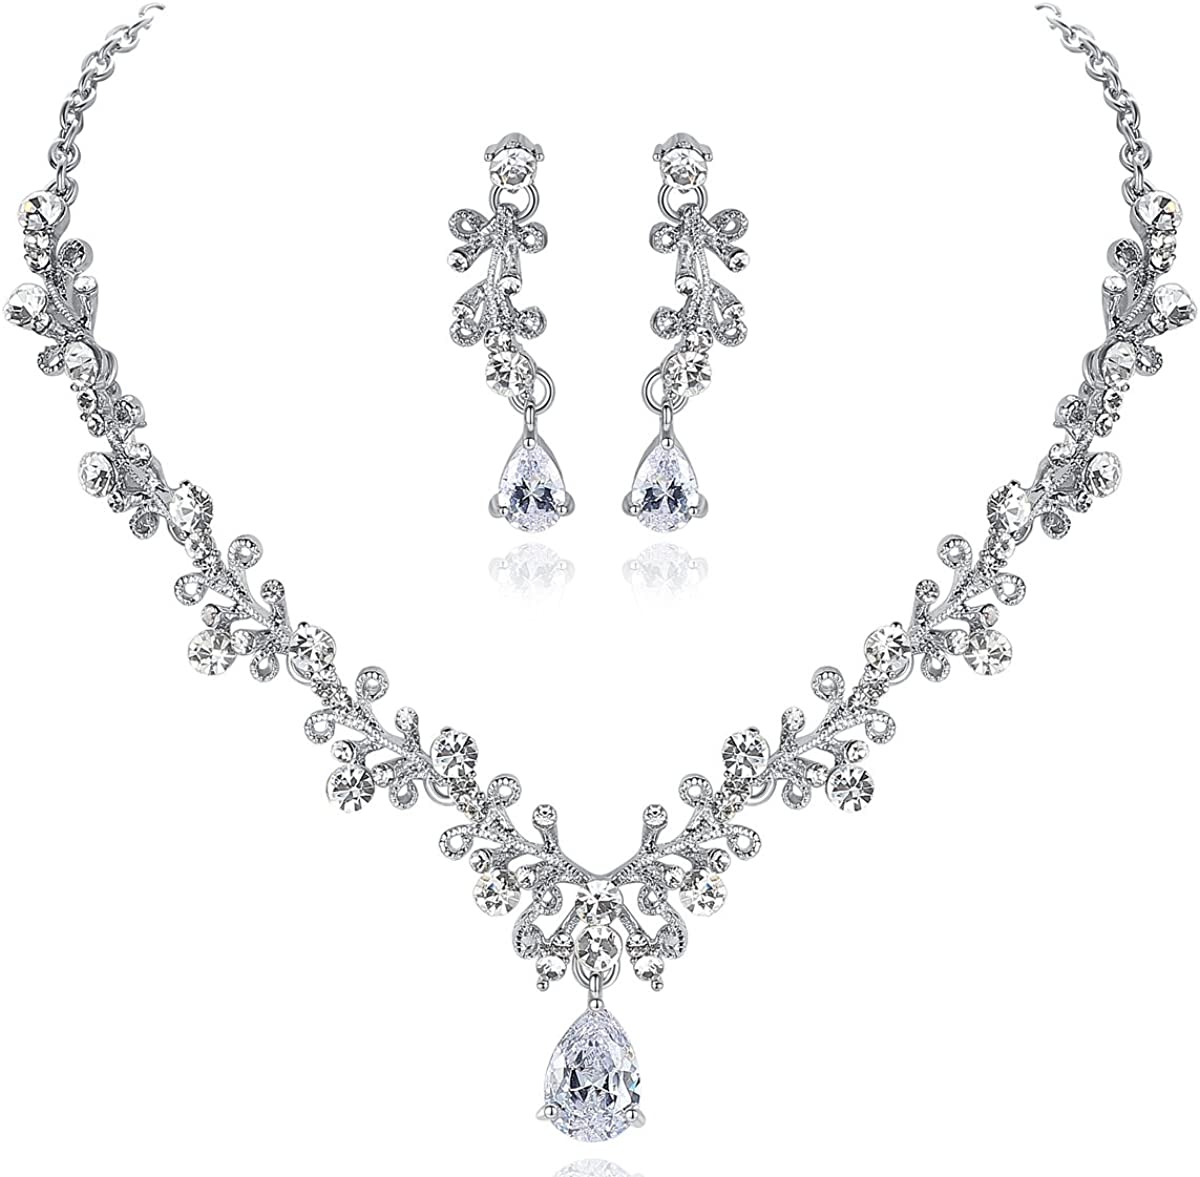 mecresh Wedding Leaf Cubic Zirconia Necklace Earring and Tiara Jewelry Set for Women Valentine's Day Gifts